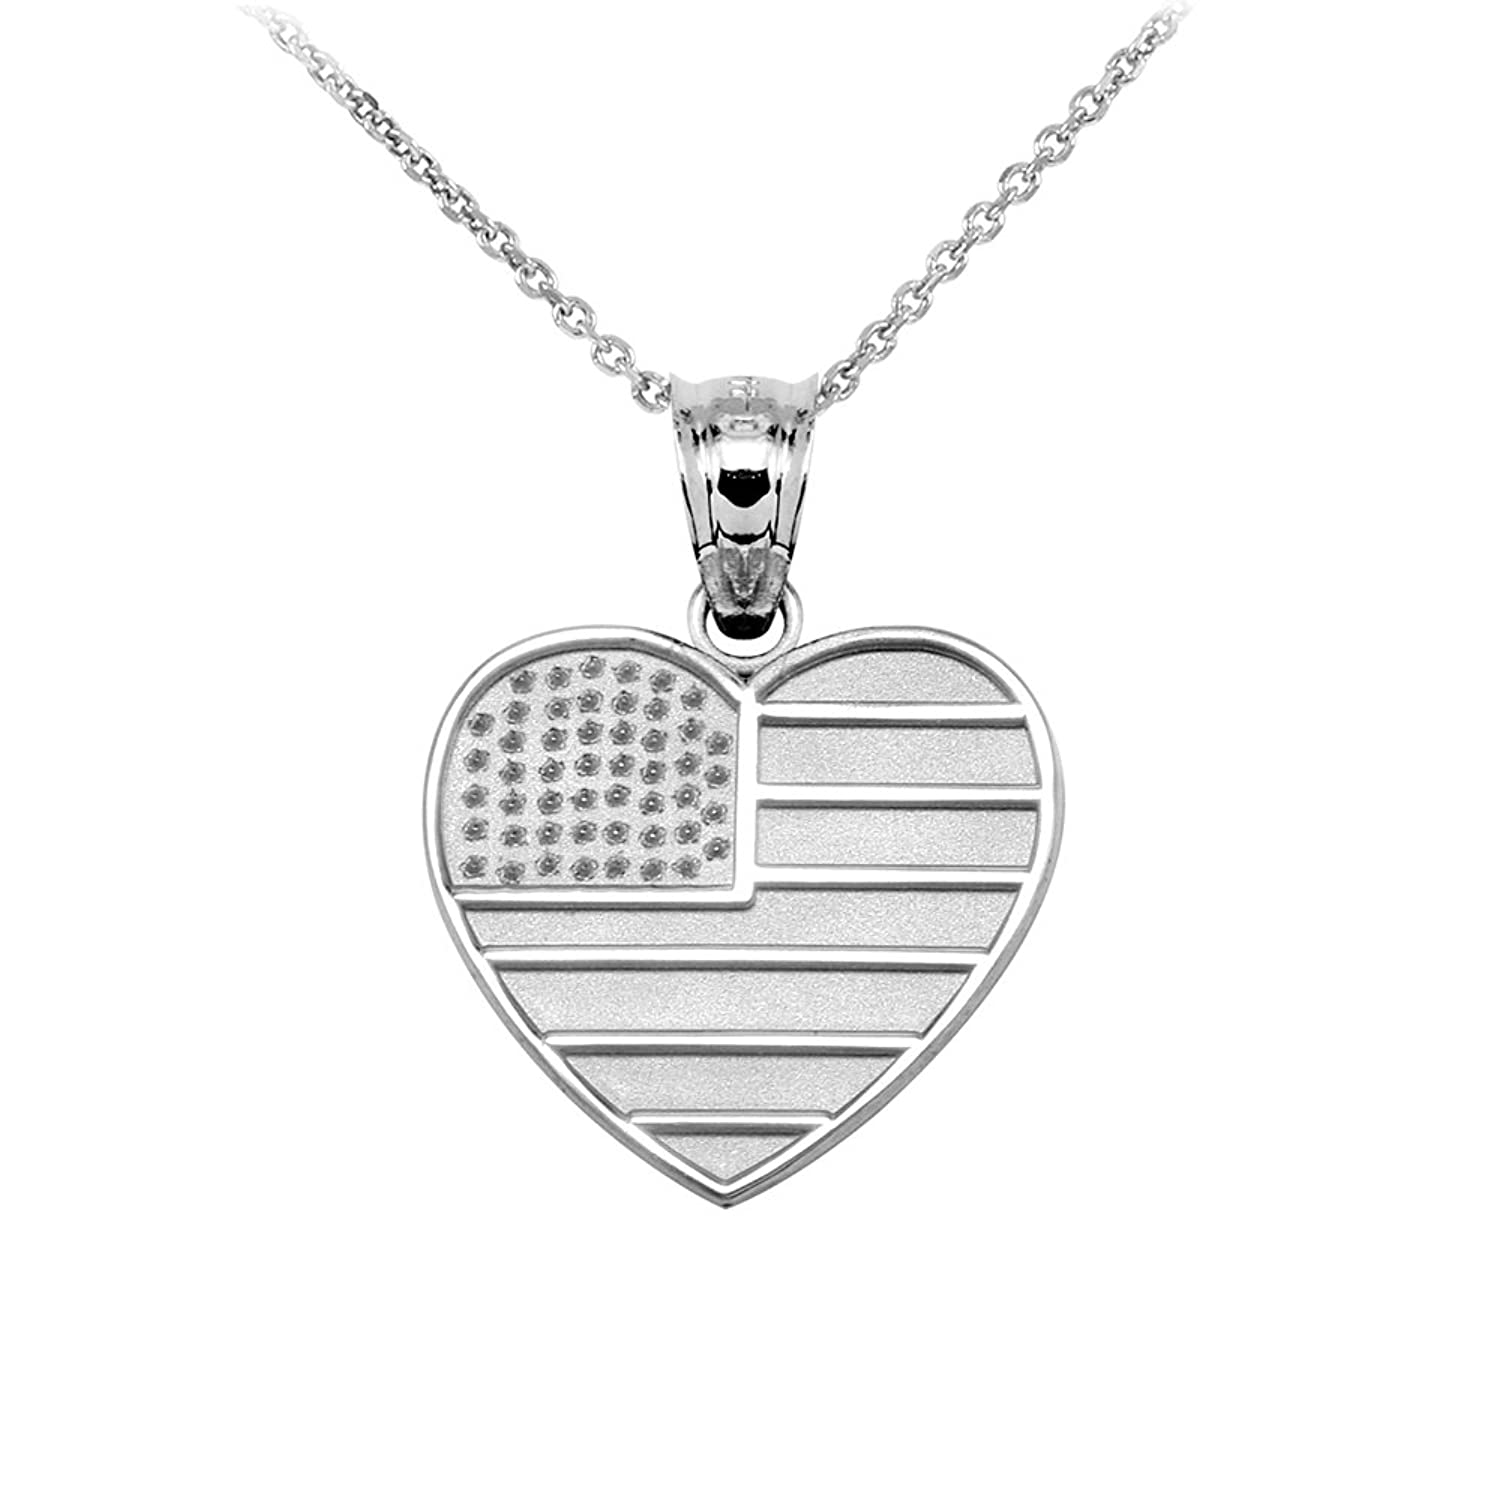 dog tag officer home personalized badge police uniqjewelrydesigns necklace pendant